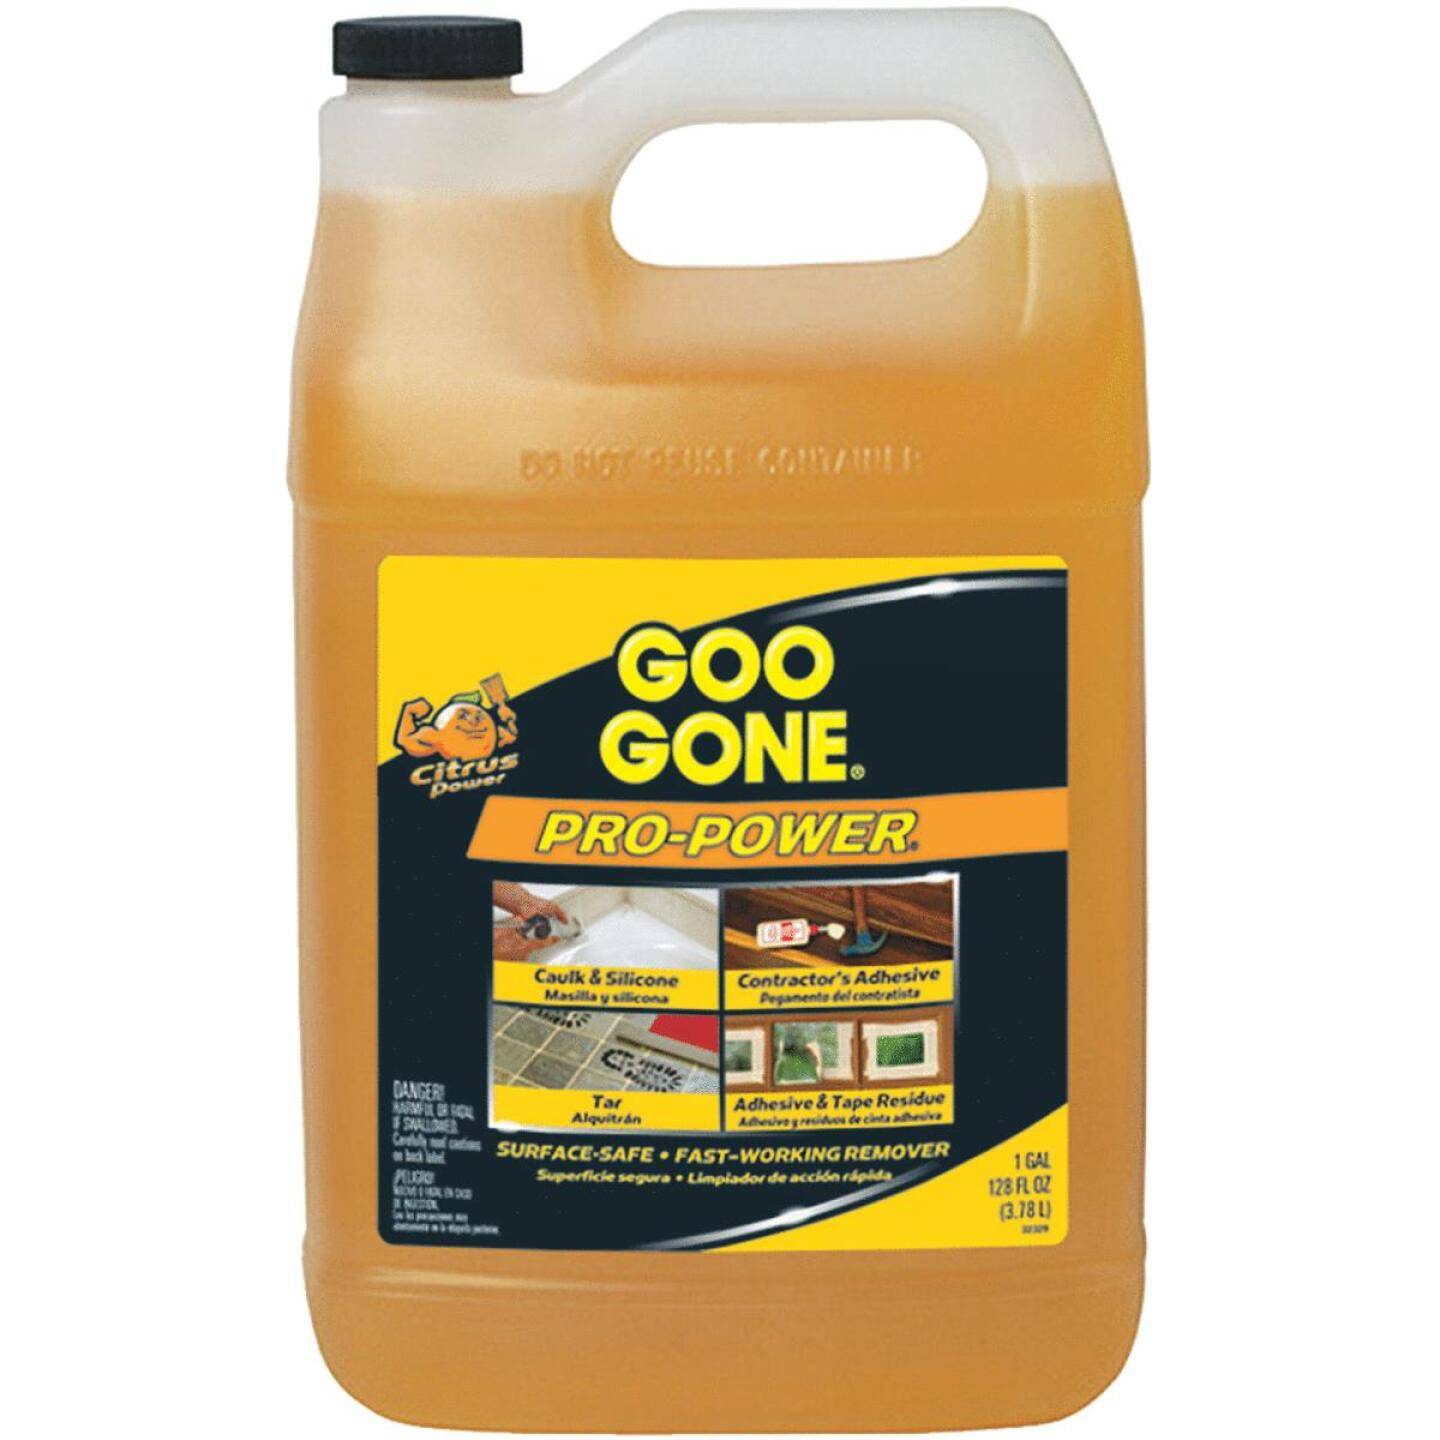 Goo Gone 1 Gal. Pro-Power Adhesive Remover Image 273